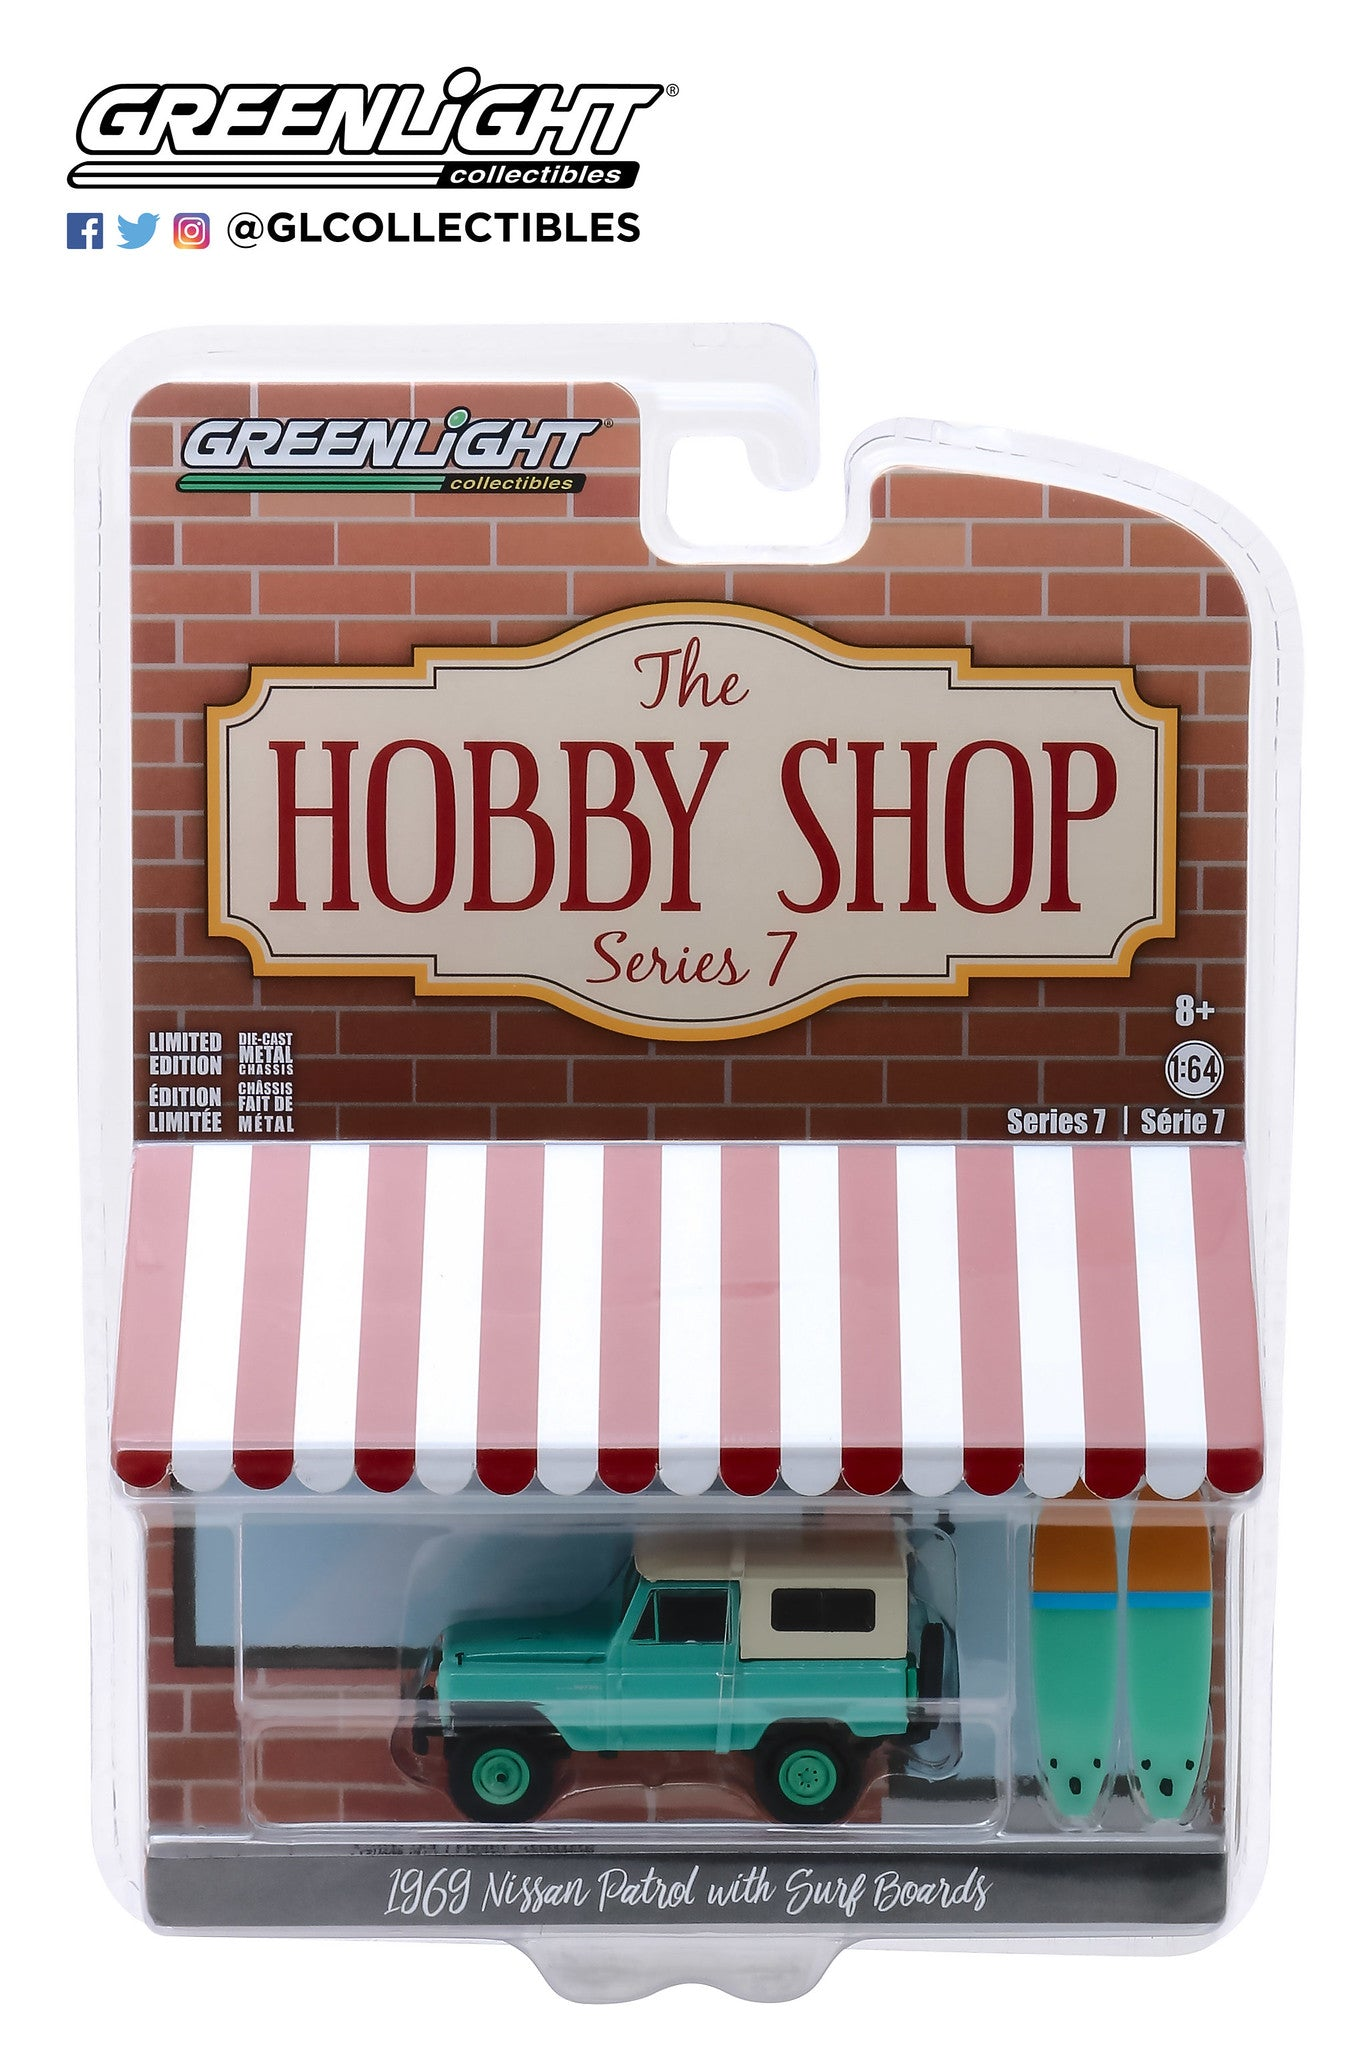 GreenLight 1:64 The Hobby Shop Series 7 - 1969 Nissan Patrol (60) with Surfboards 97070-C